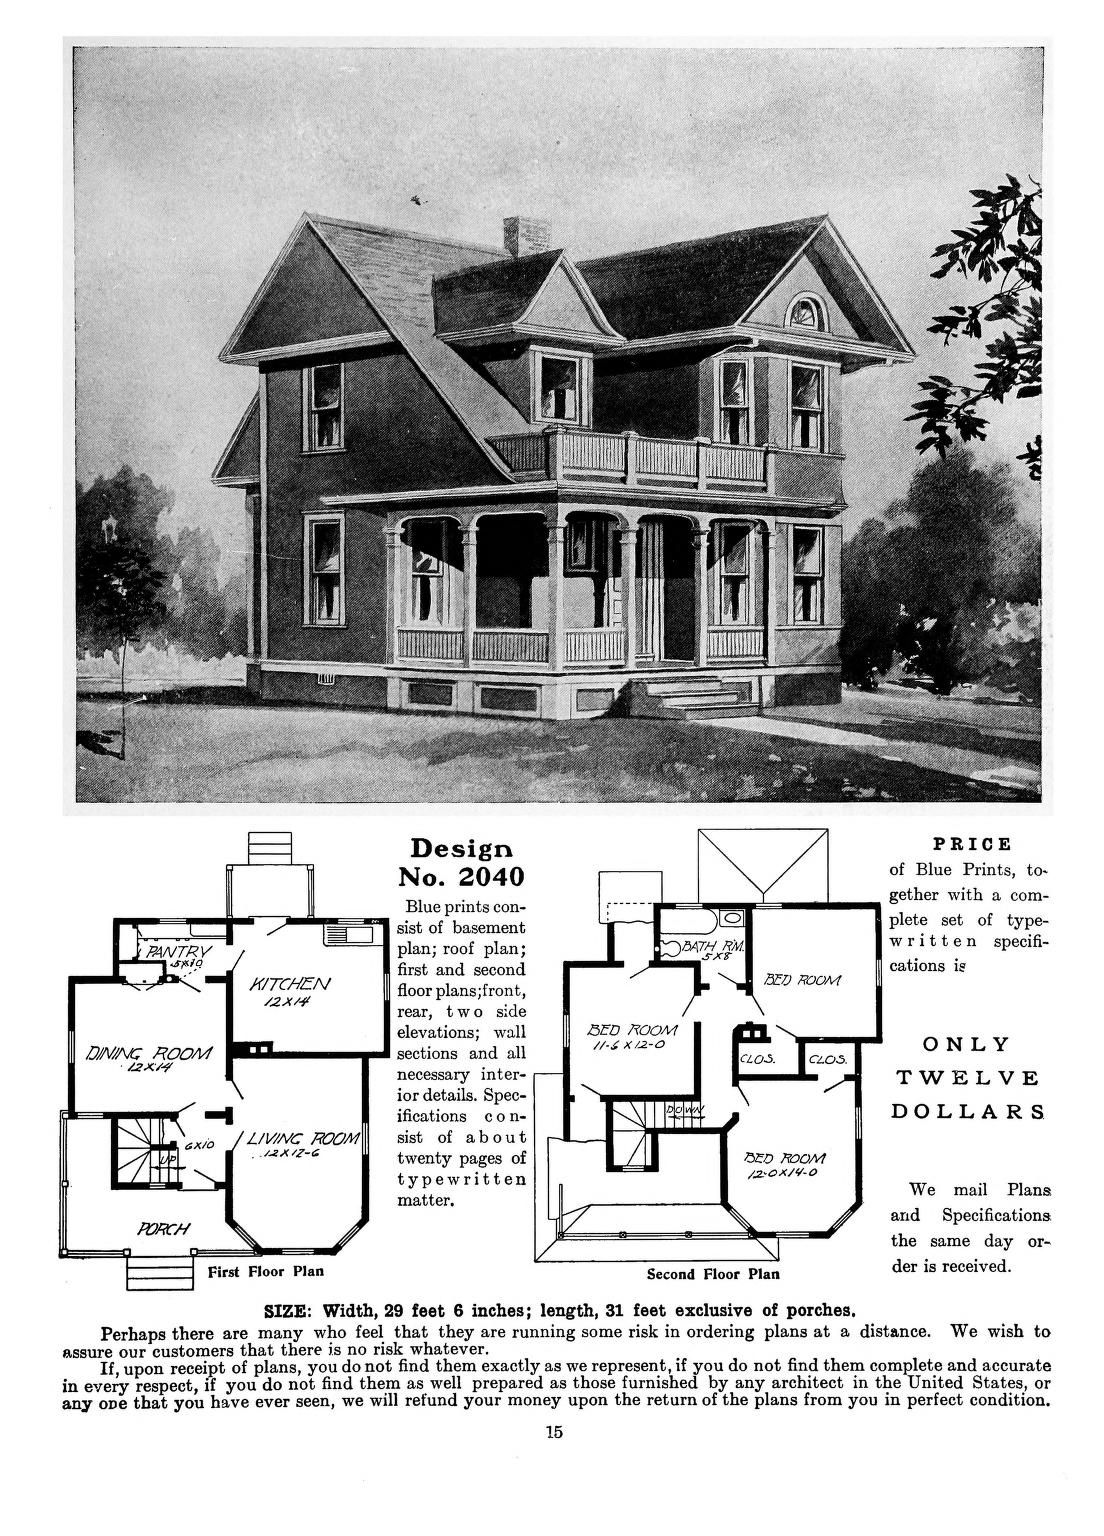 Radford S Artistic Homes 250 Designs Radford Architectural Company Free Download Borrow And Streaming House Plans Vintage House Plans House Floor Plans House Plans